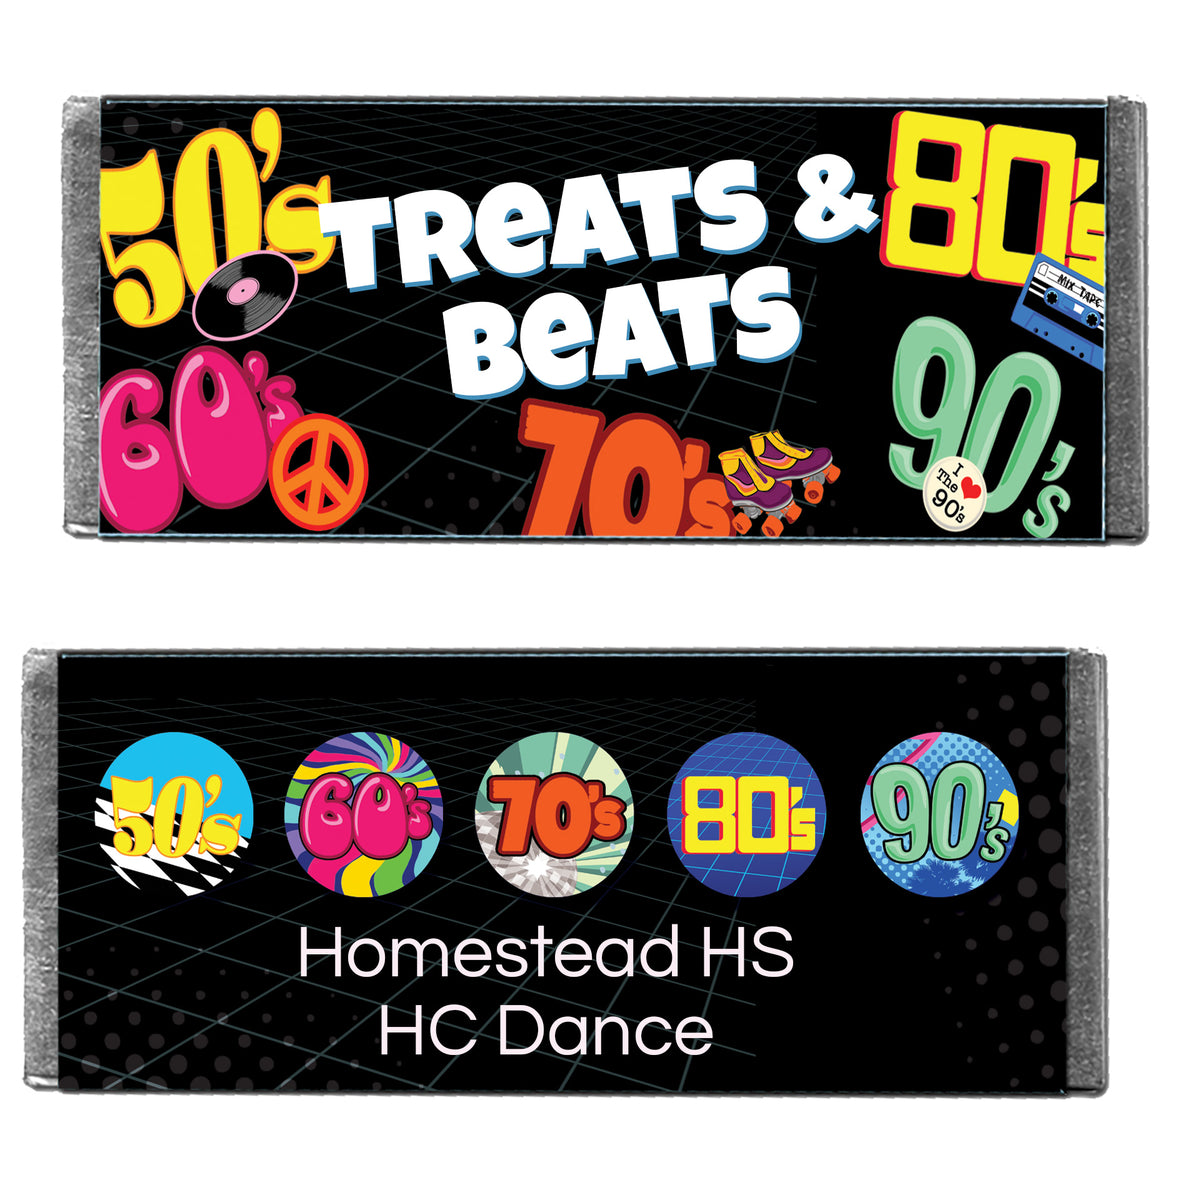 Hershey's Chocolate Through the Decades Personalized Candy Bars